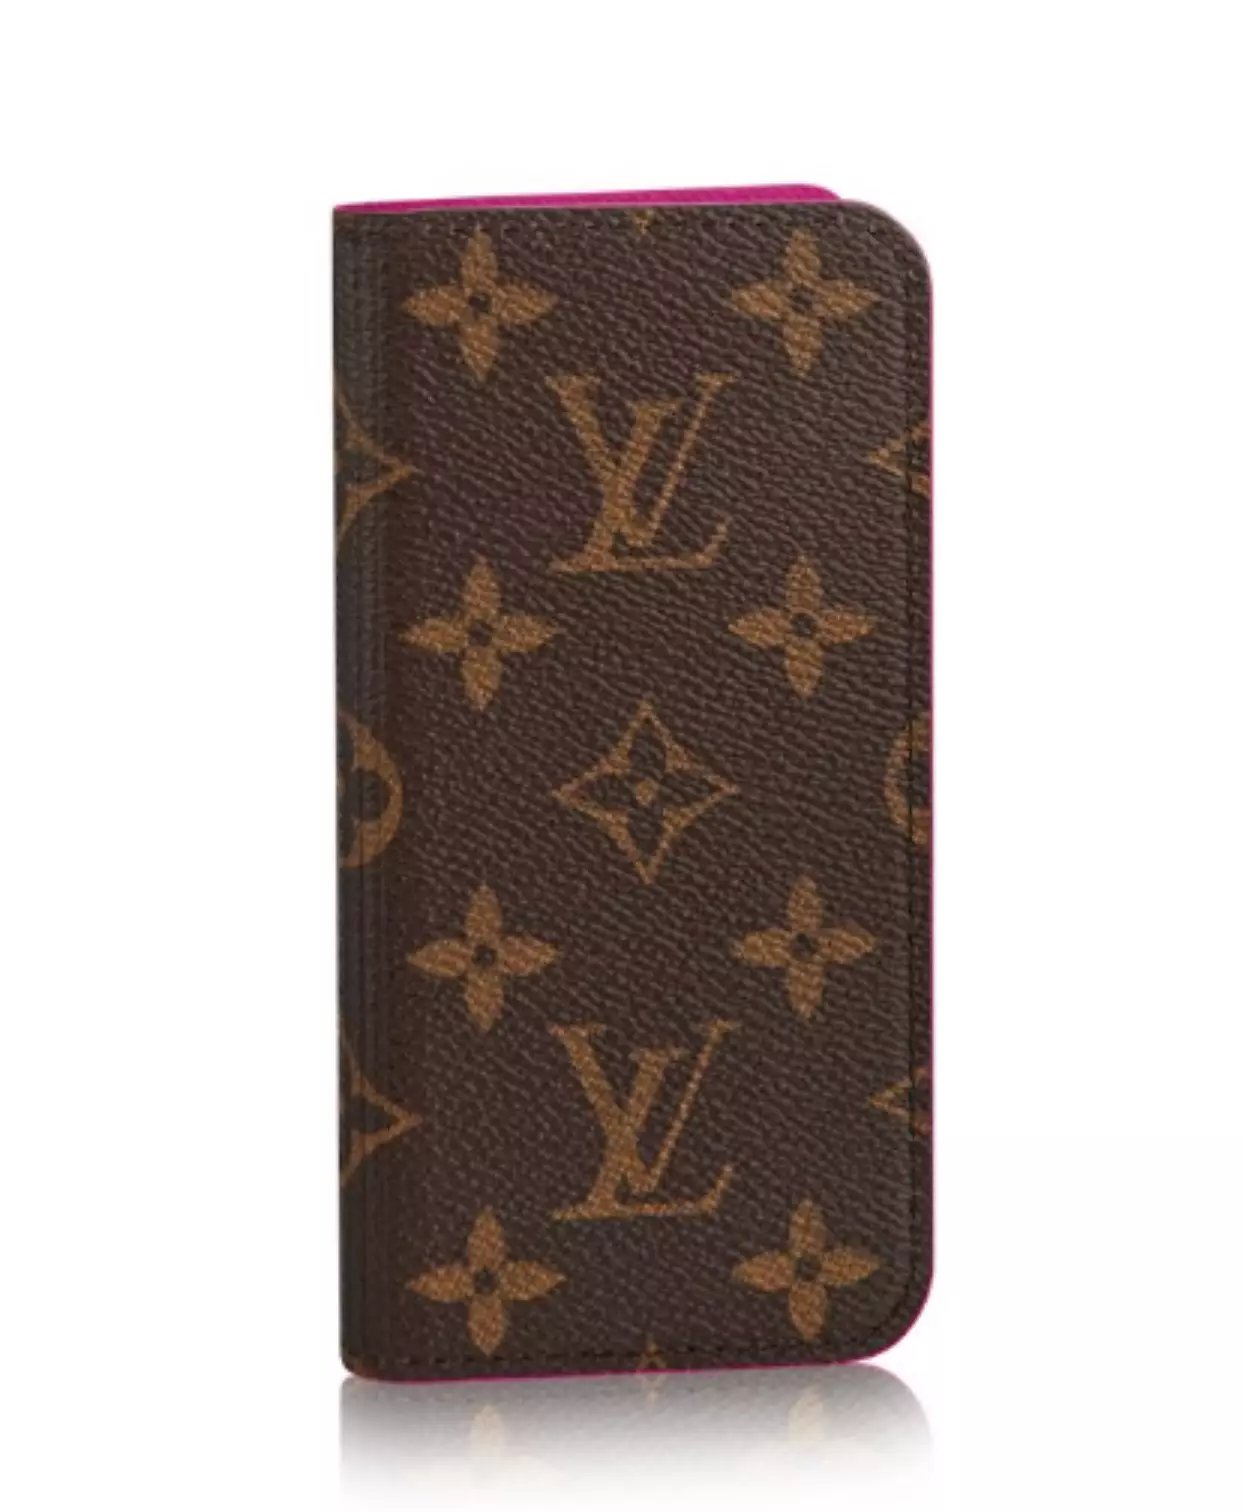 günstige iphone hüllen eigene iphone hülle erstellen Louis Vuitton iphone7 Plus hülle iphone tasche leder iphone schutz handyhülle iphone 7 Plus handyhülle personalisieren iphone silikon iphone 7 Plus hutzhülle